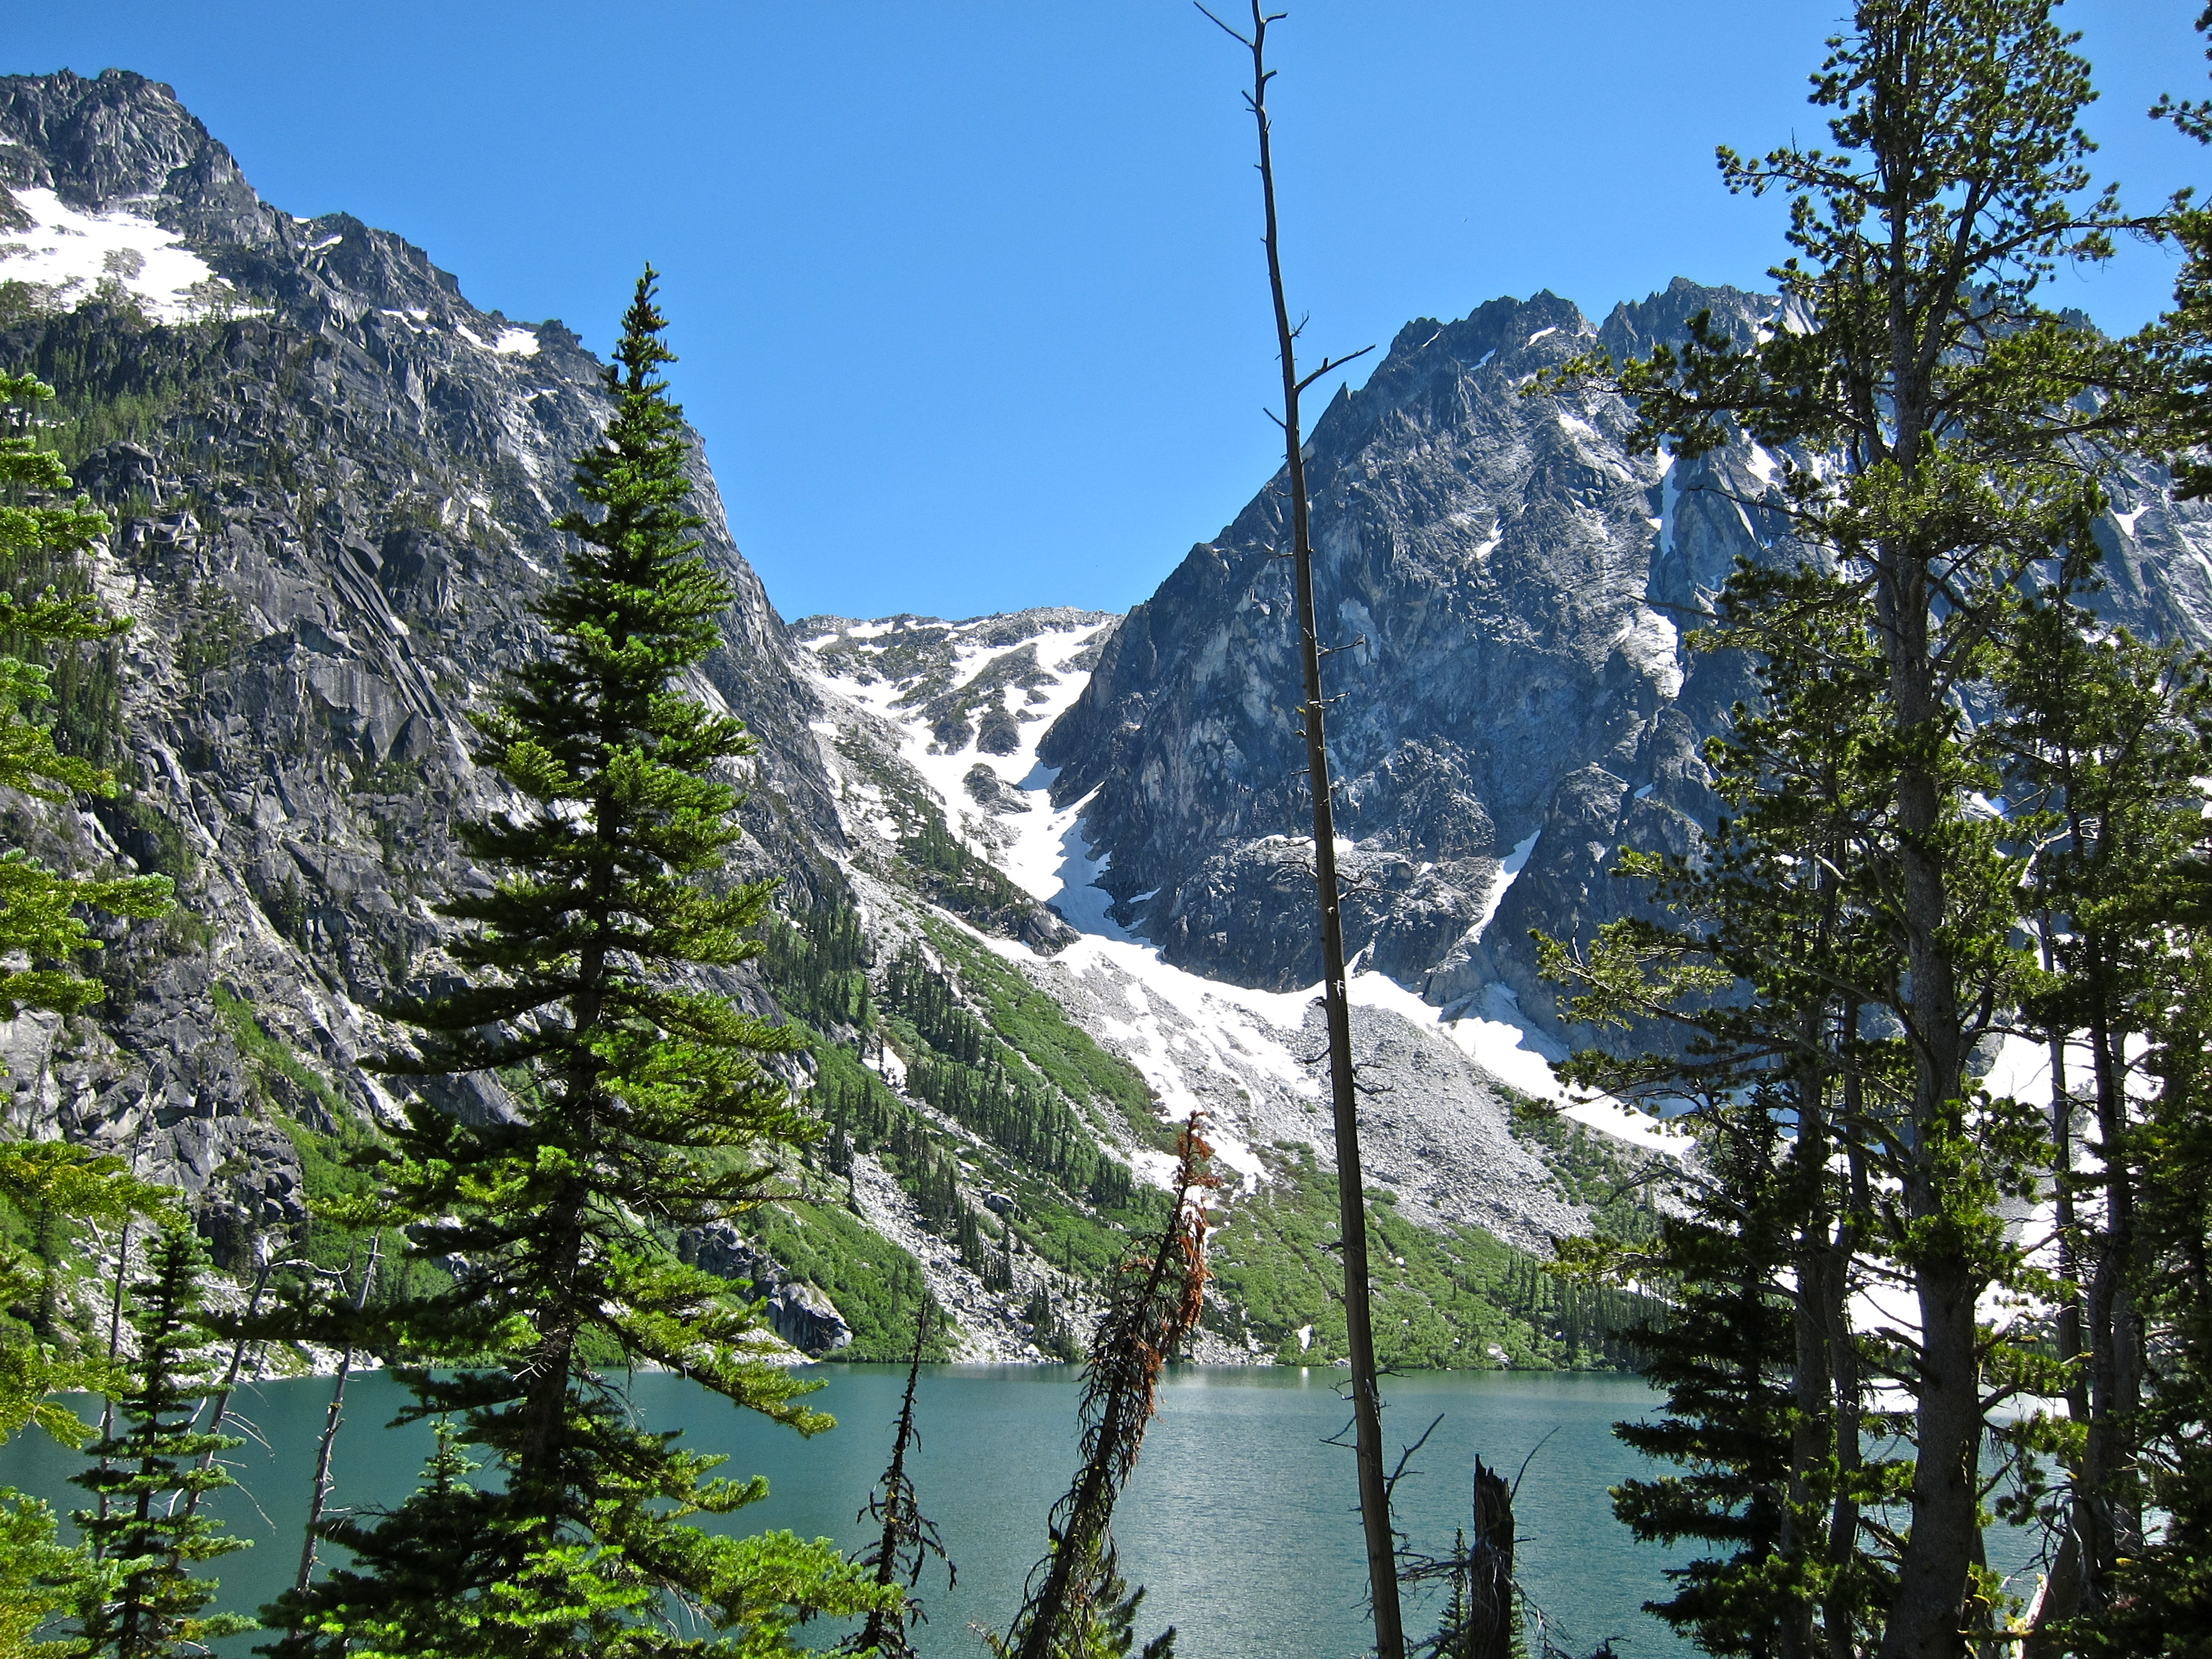 Lake Colchuck, Aasgard pass (center), Dragontail Group (right)